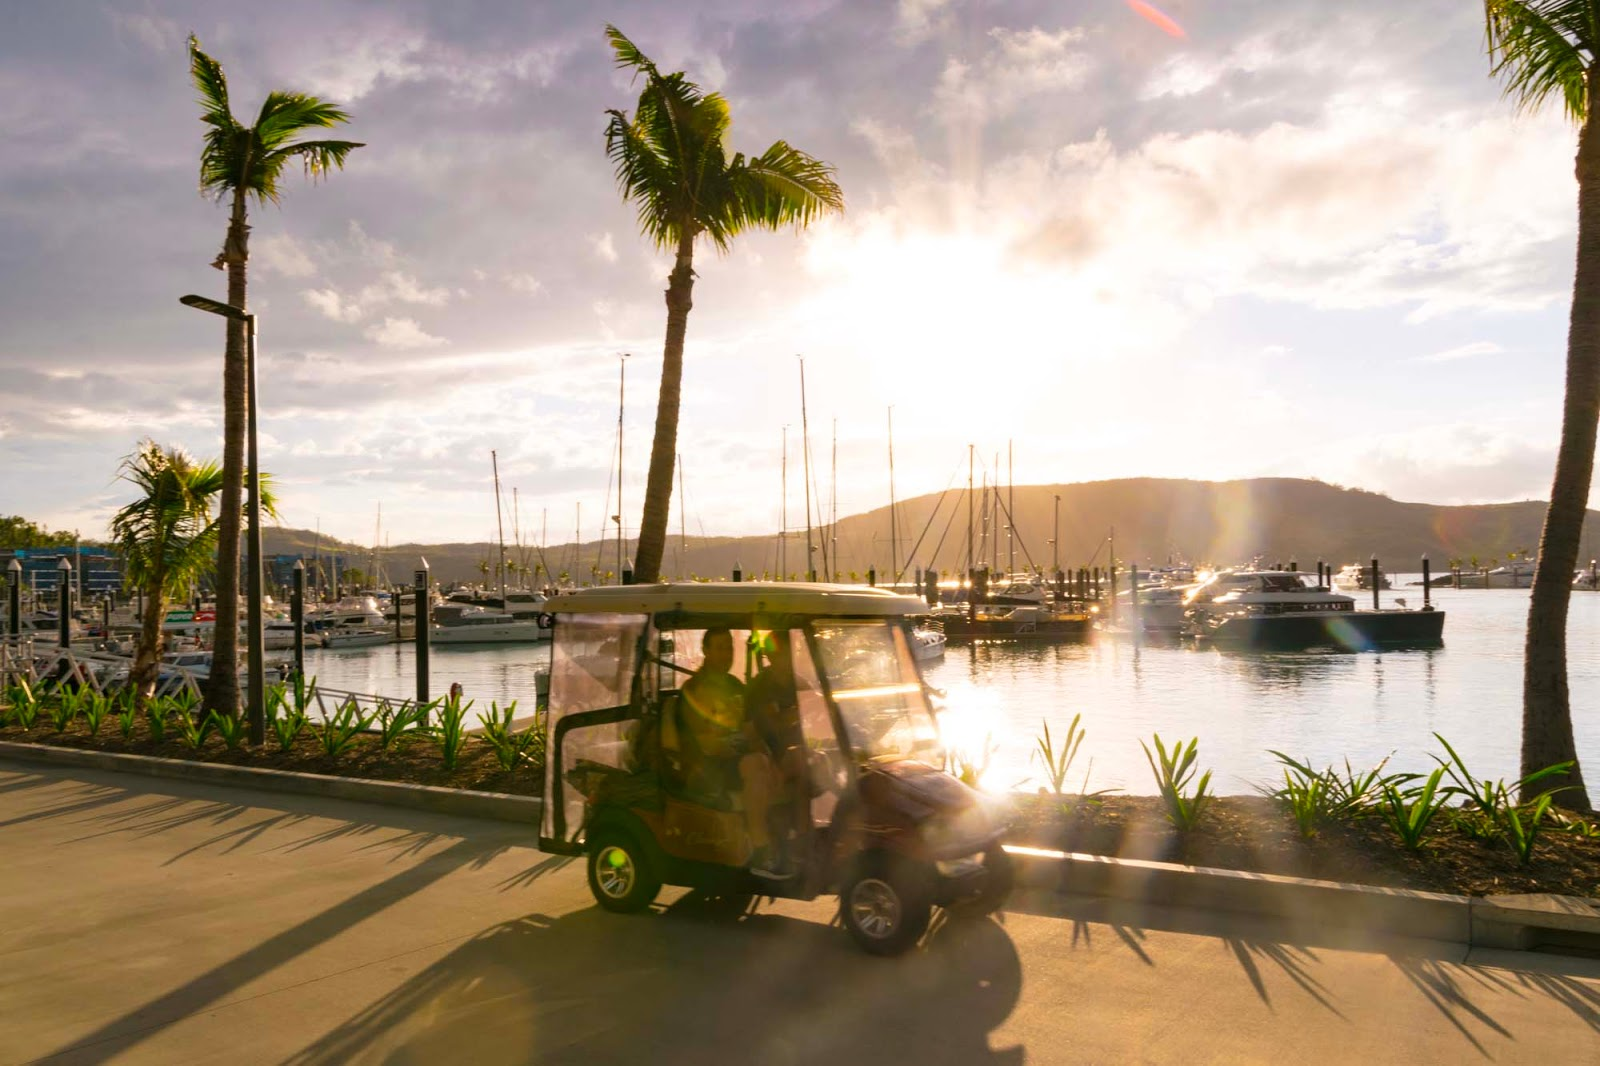 sunset on hamilton island